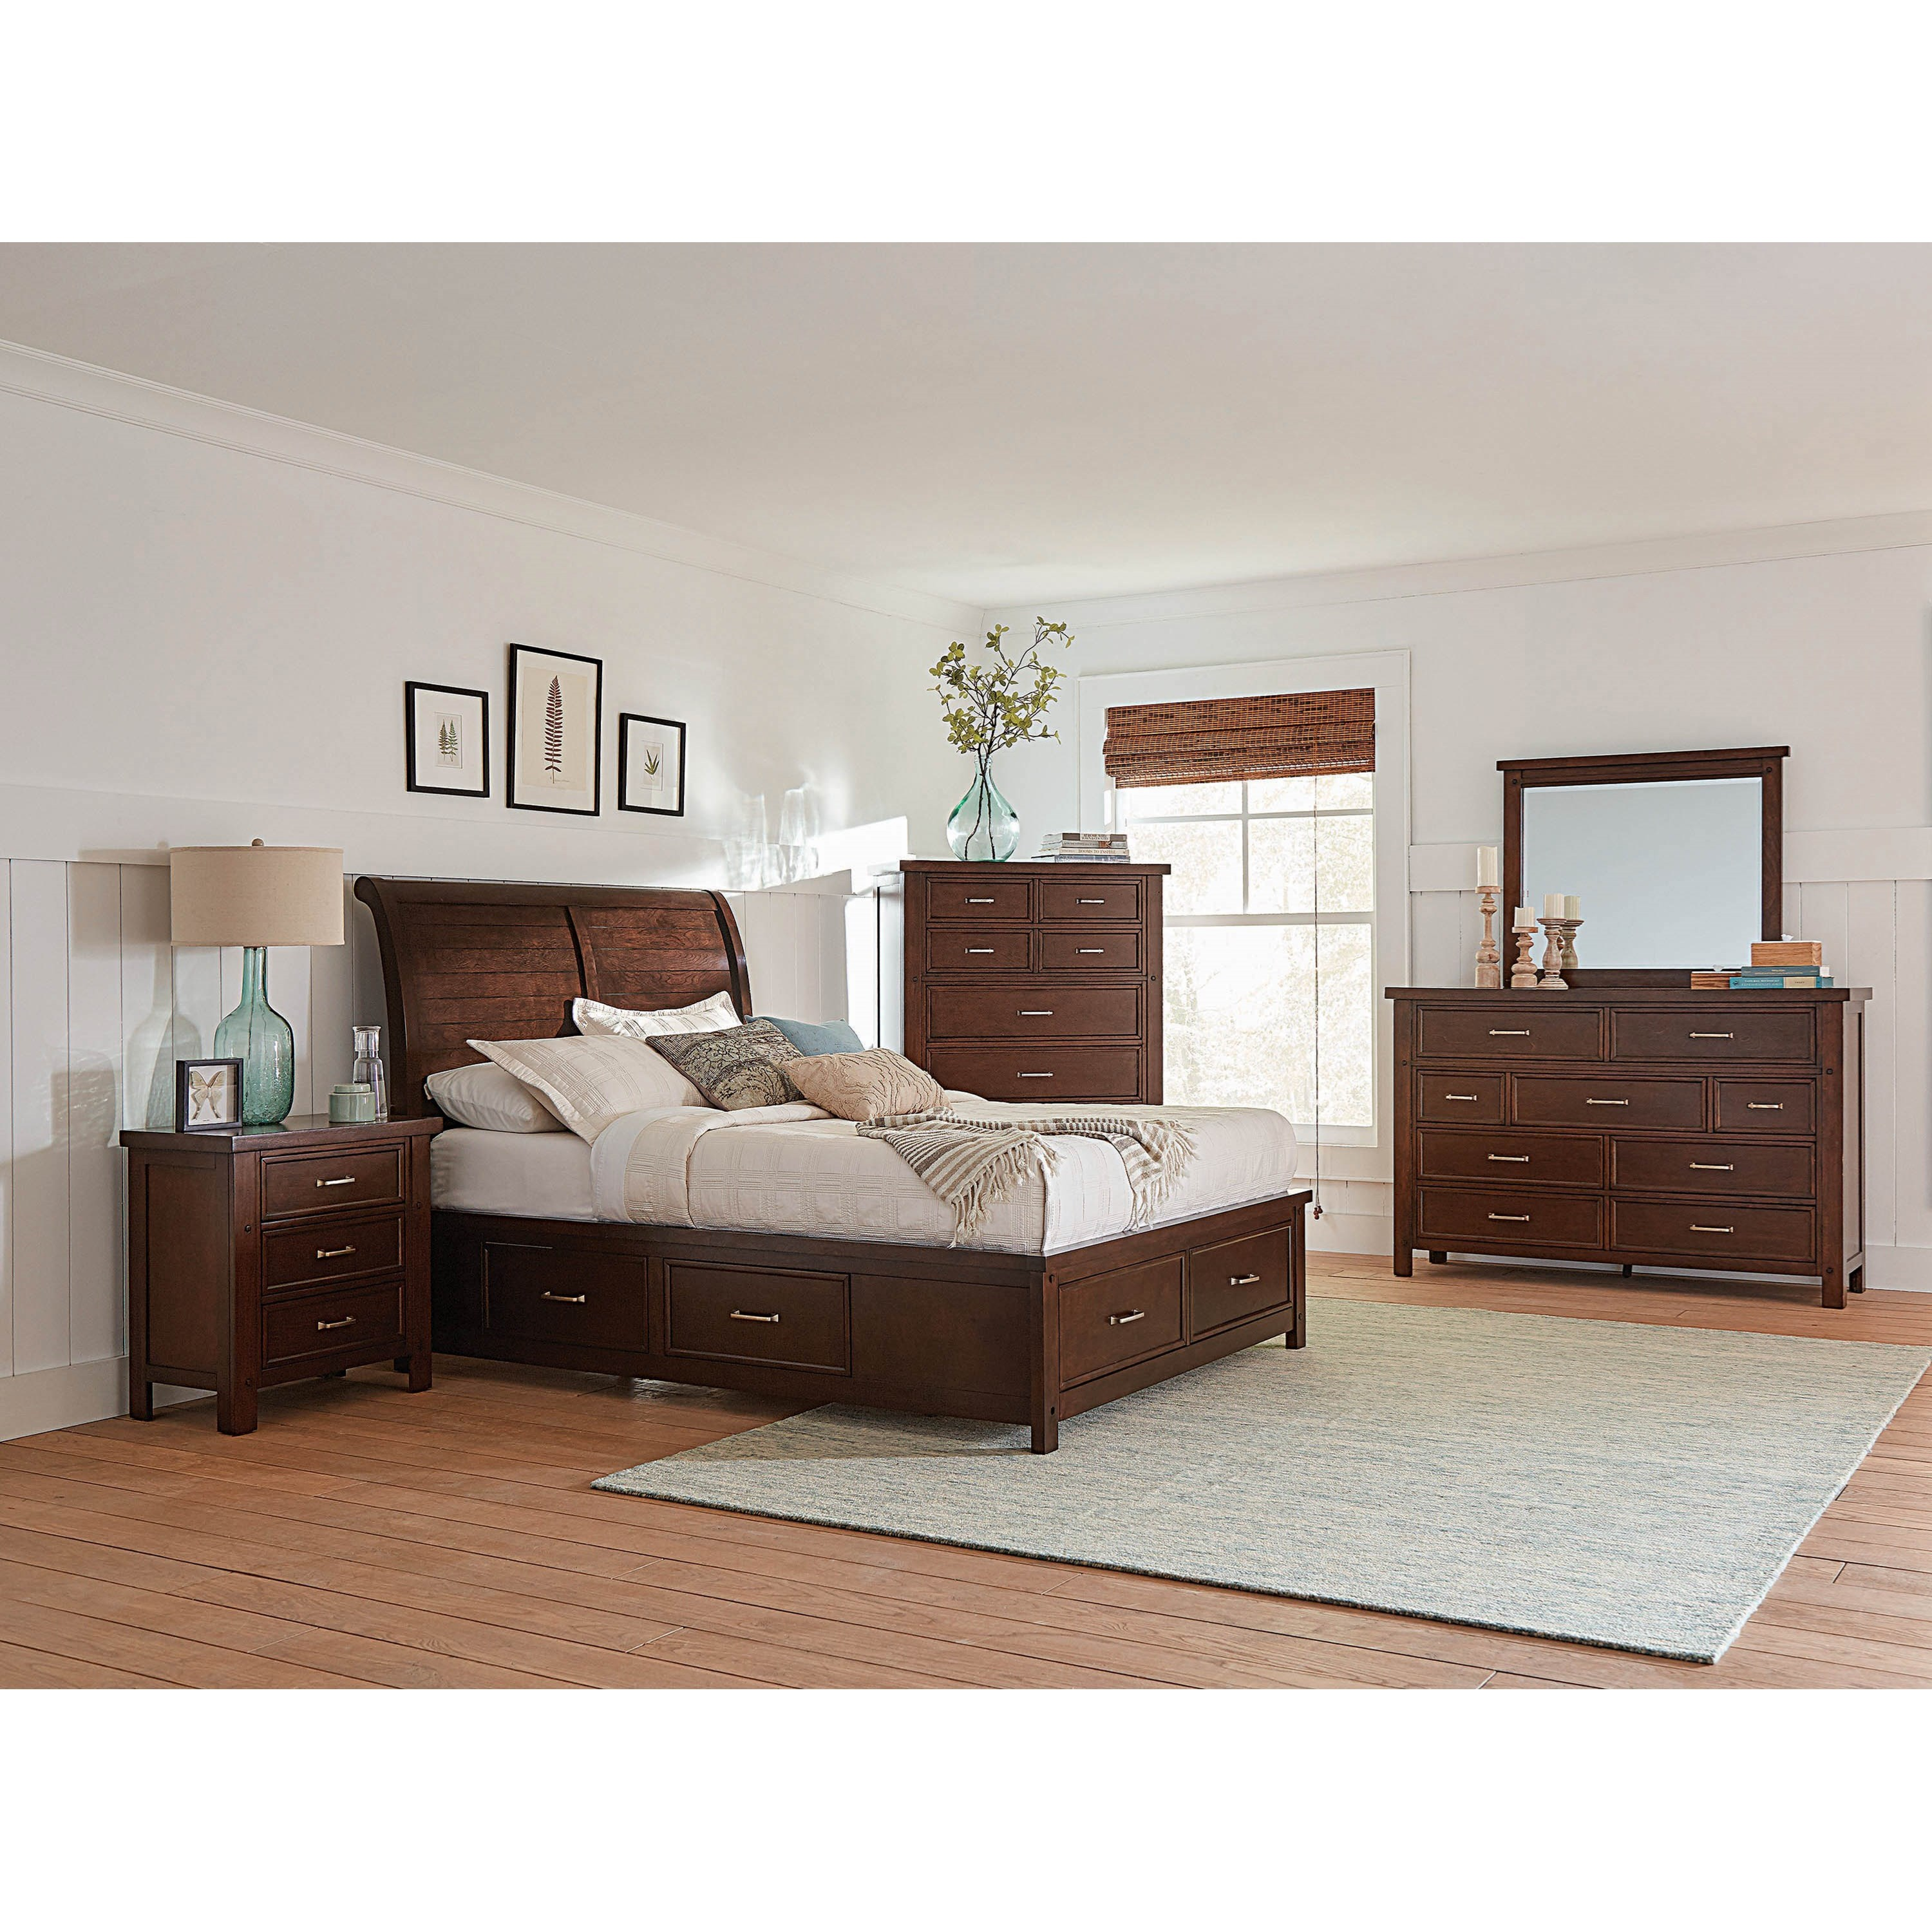 Barstow Queen Bedroom Group by Coaster at Rife's Home Furniture